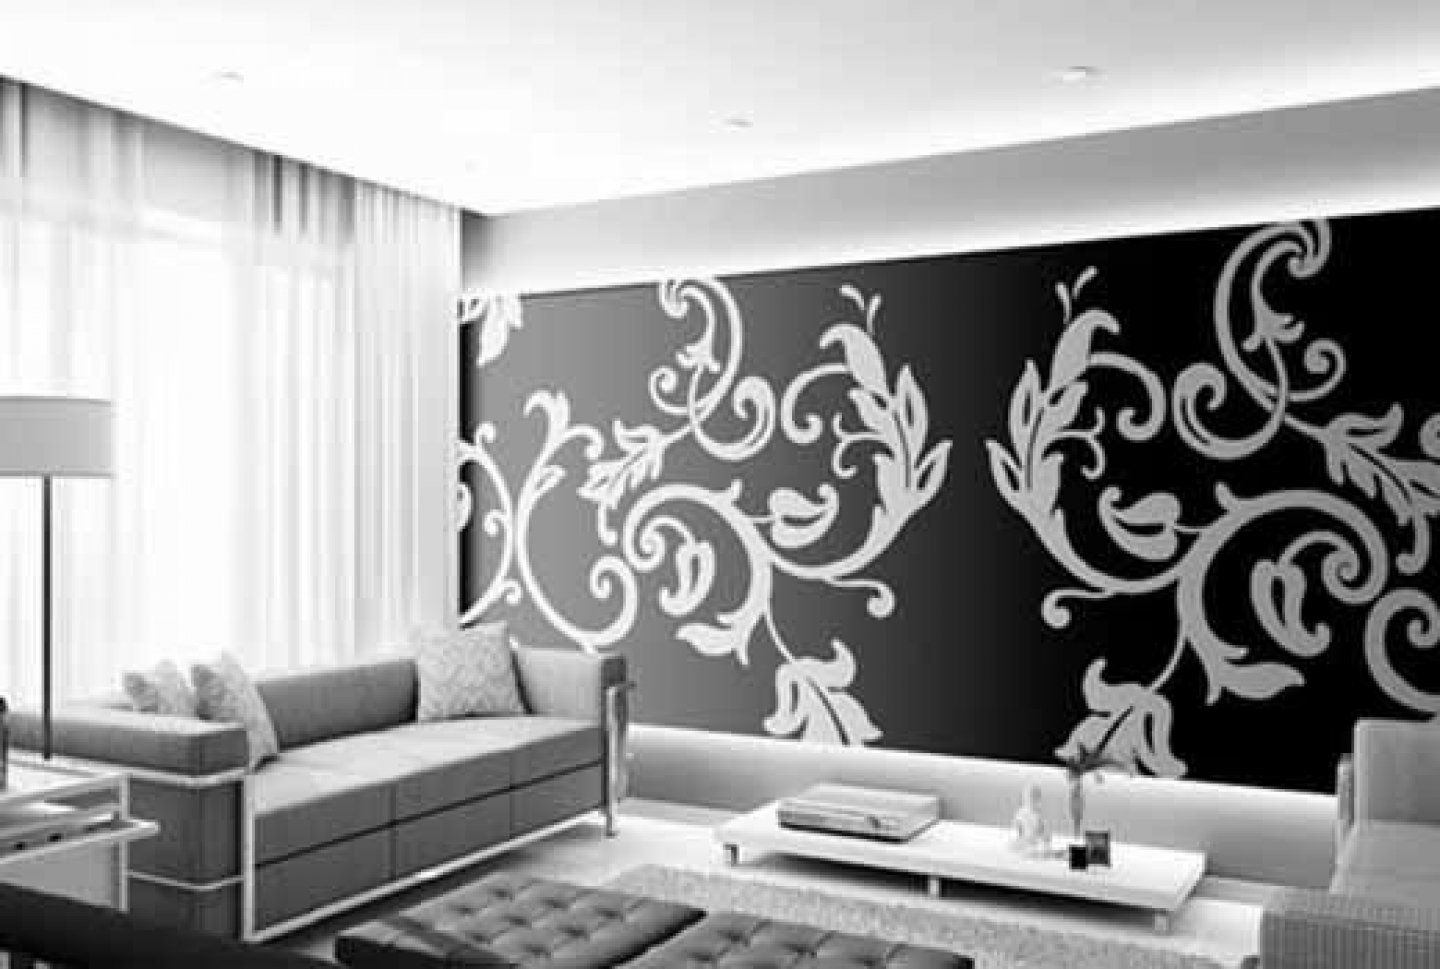 ... White And Black Wallpaper Designs 8 Cool Hd Wallpaper White And Black  Wallpaper Designs 8 Cool ...